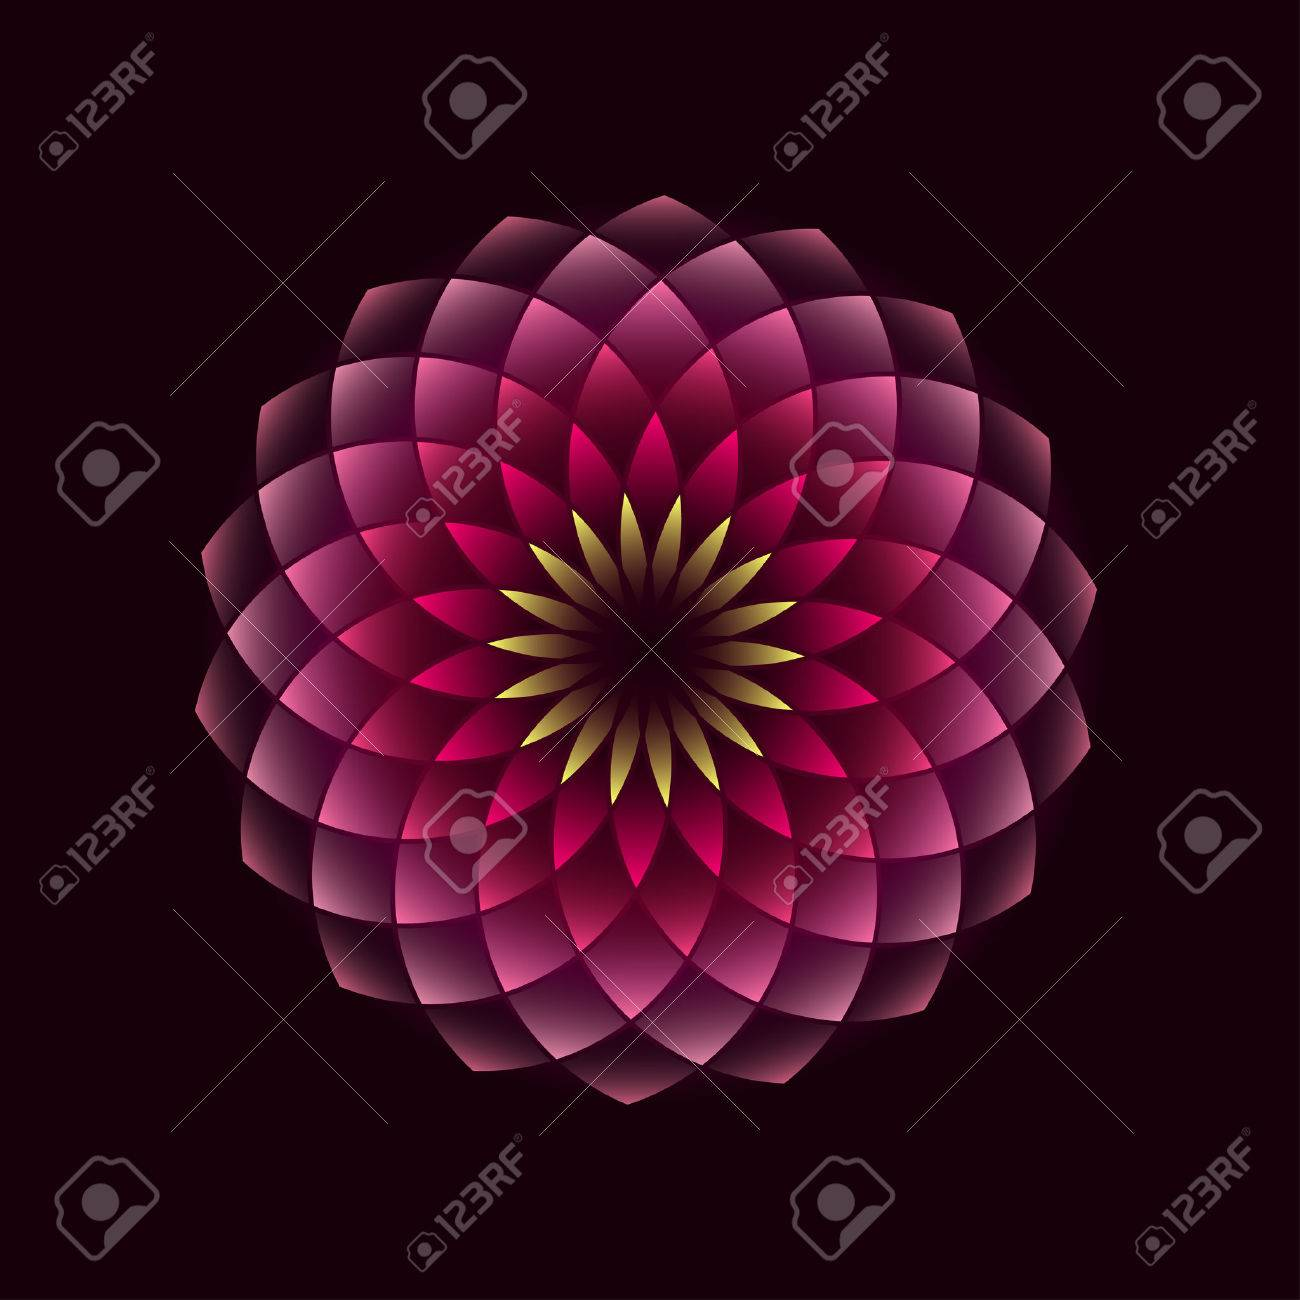 Pink flower geometrical sign isolated on black background. illustration Banque d'images - 53858933